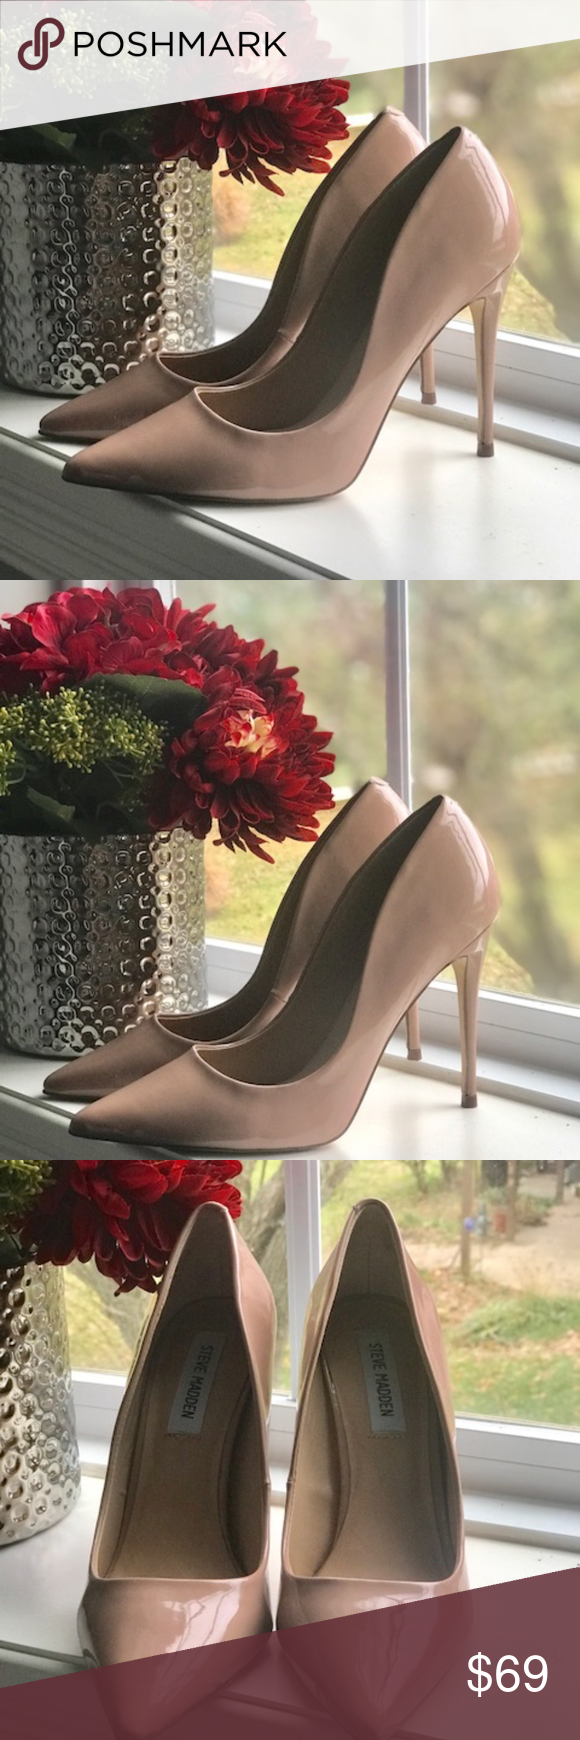 eeb5d80c3d Steve Madden Daisie Dark Blush Patent Pump Slip-on design. Pointed-toe  silhouette. Man-made lining. Lightly padded footbed. Wrapped heel. Man-made  outsole.